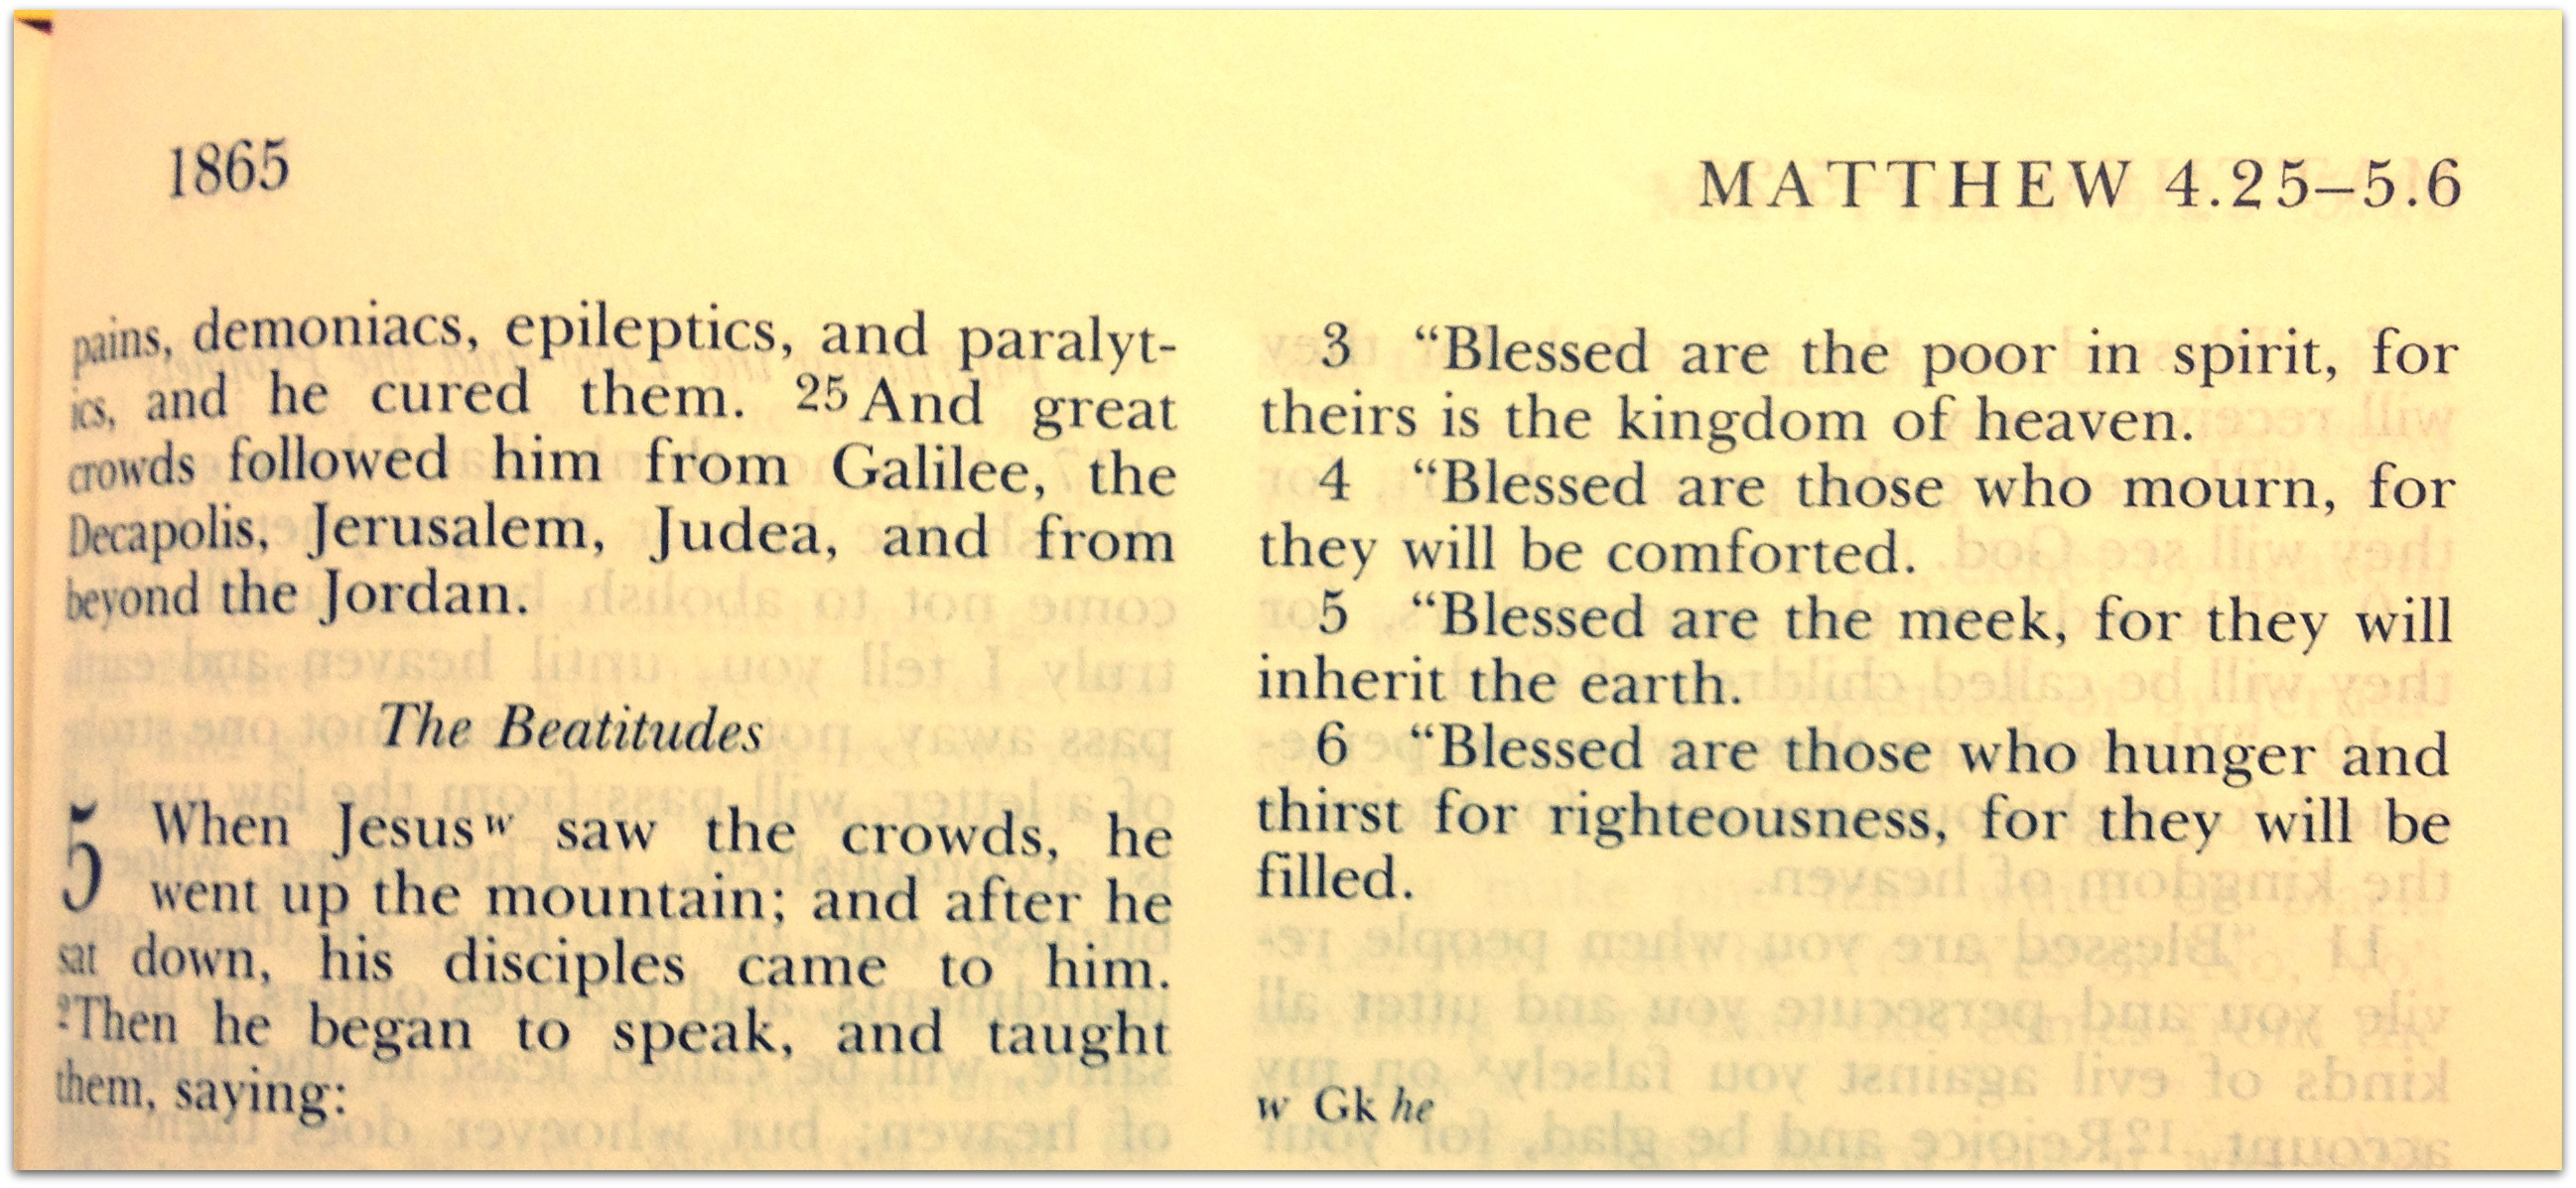 Good Grief Beatitudes Reading Between The Lines